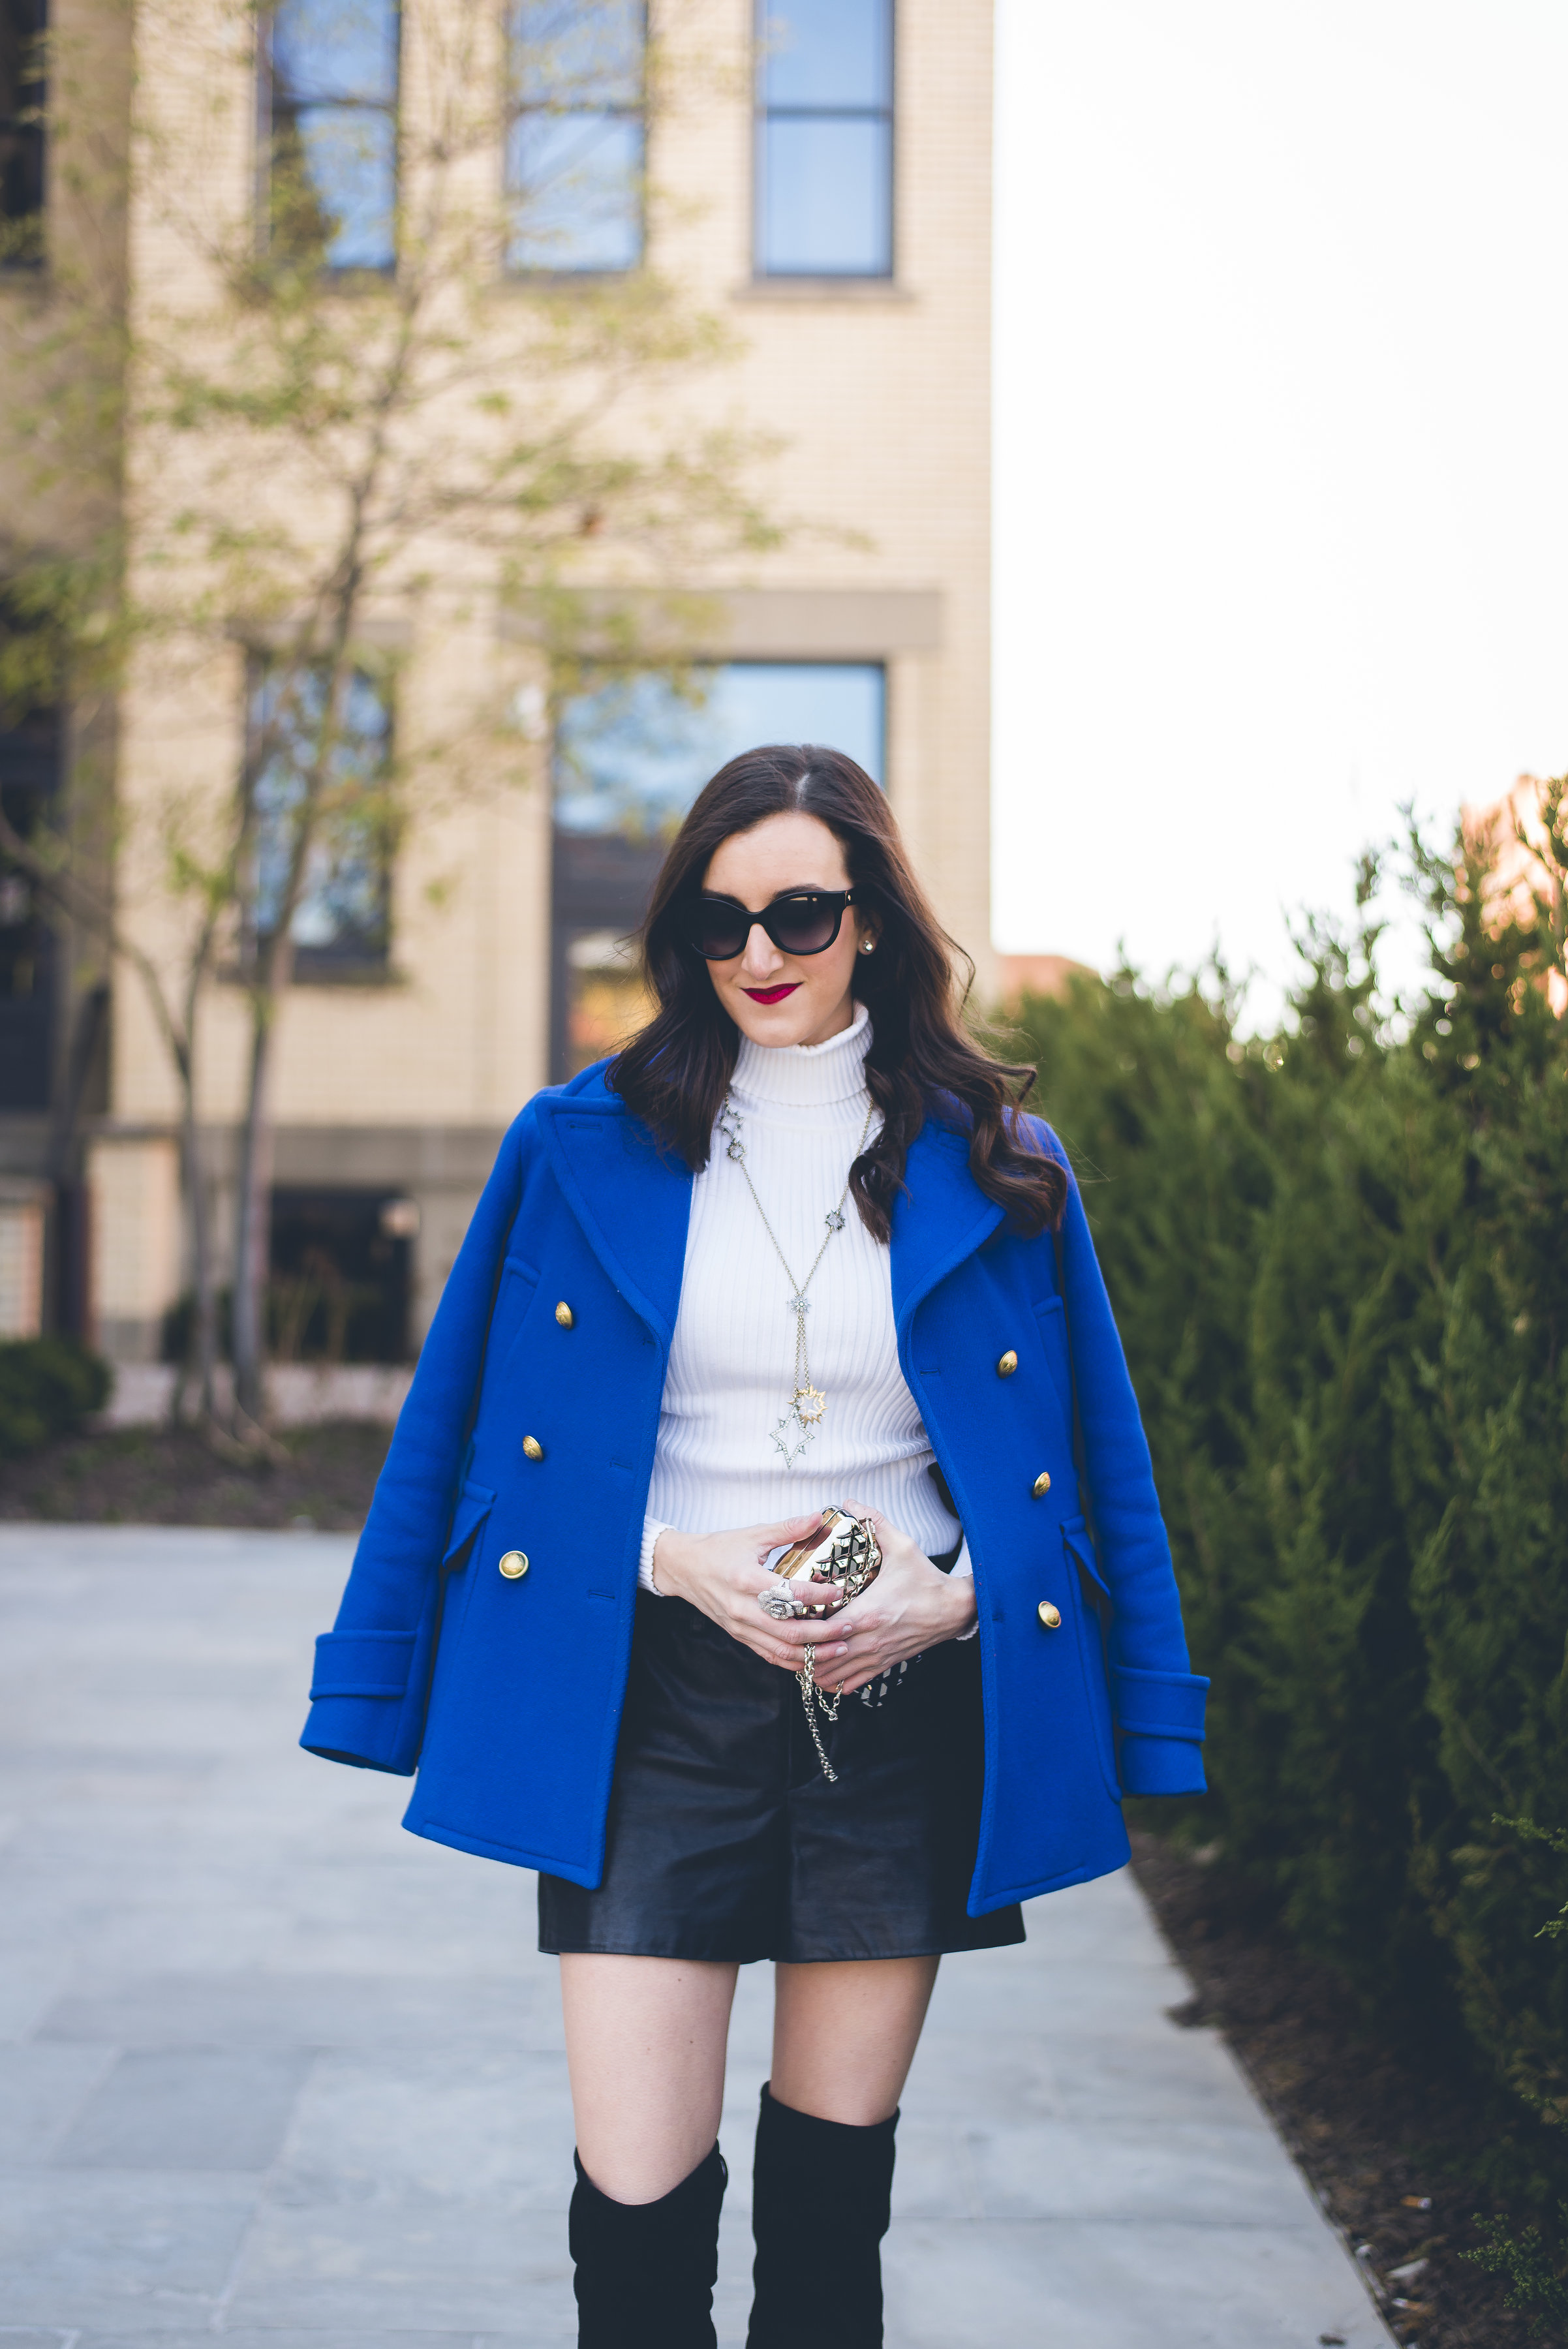 Cobalt Peacoat and a black and blue outfit